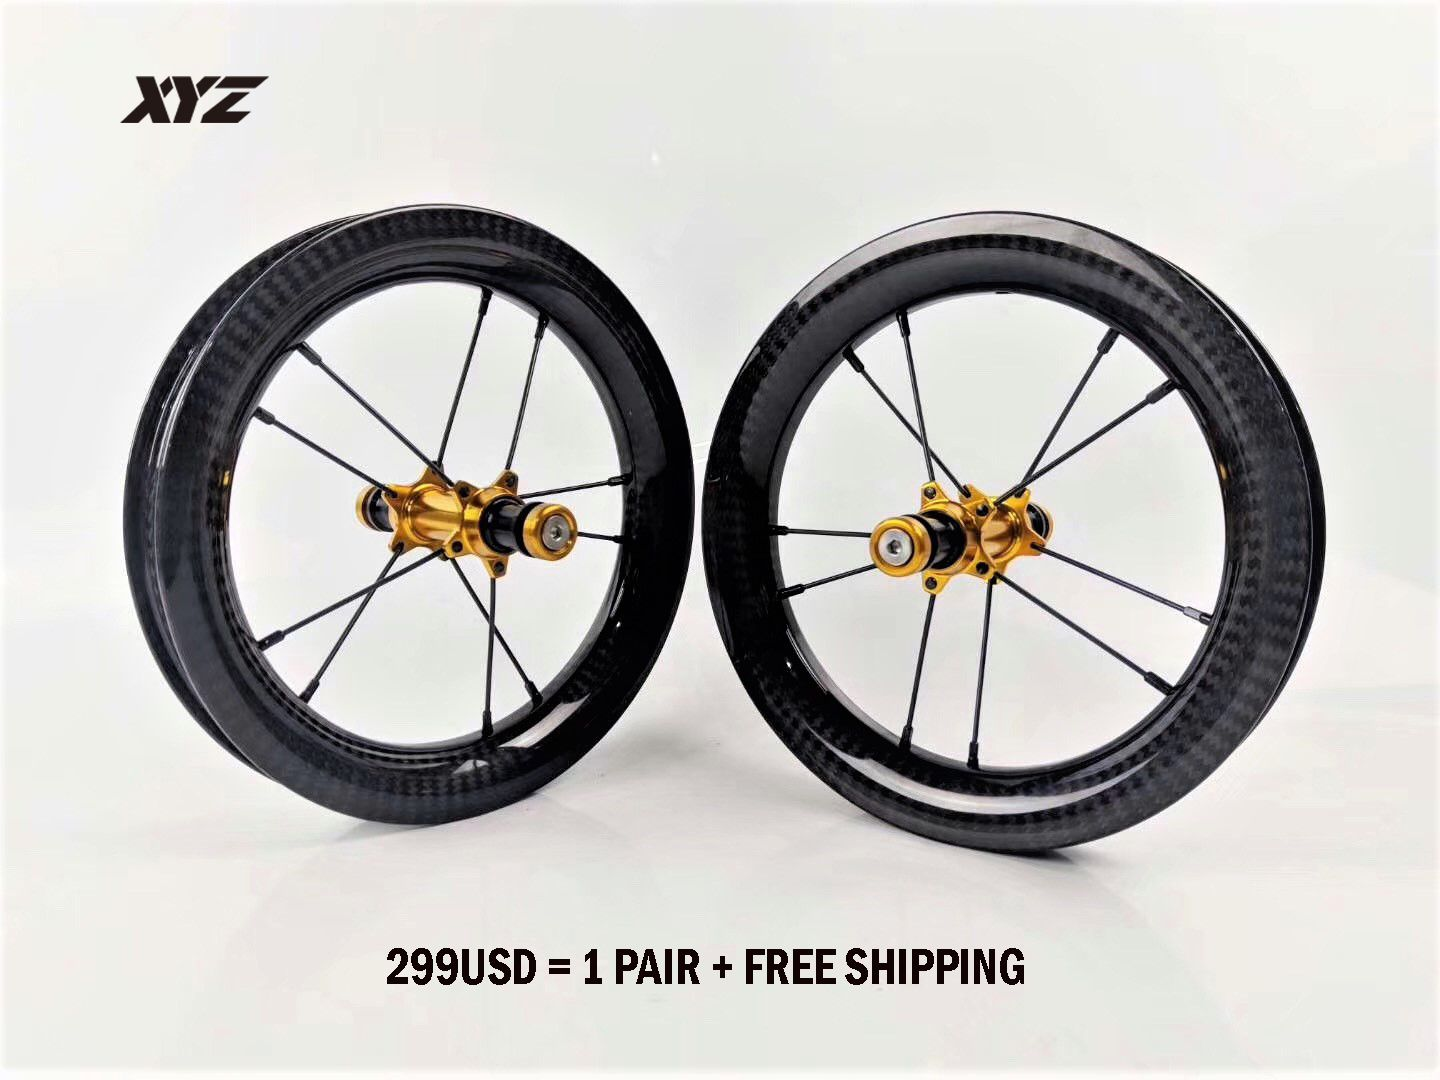 Wholesale 12inch Carbon Tubeless Wheelset For Advanced Modified Balance Bike Used 299usd Pair Include Shipment